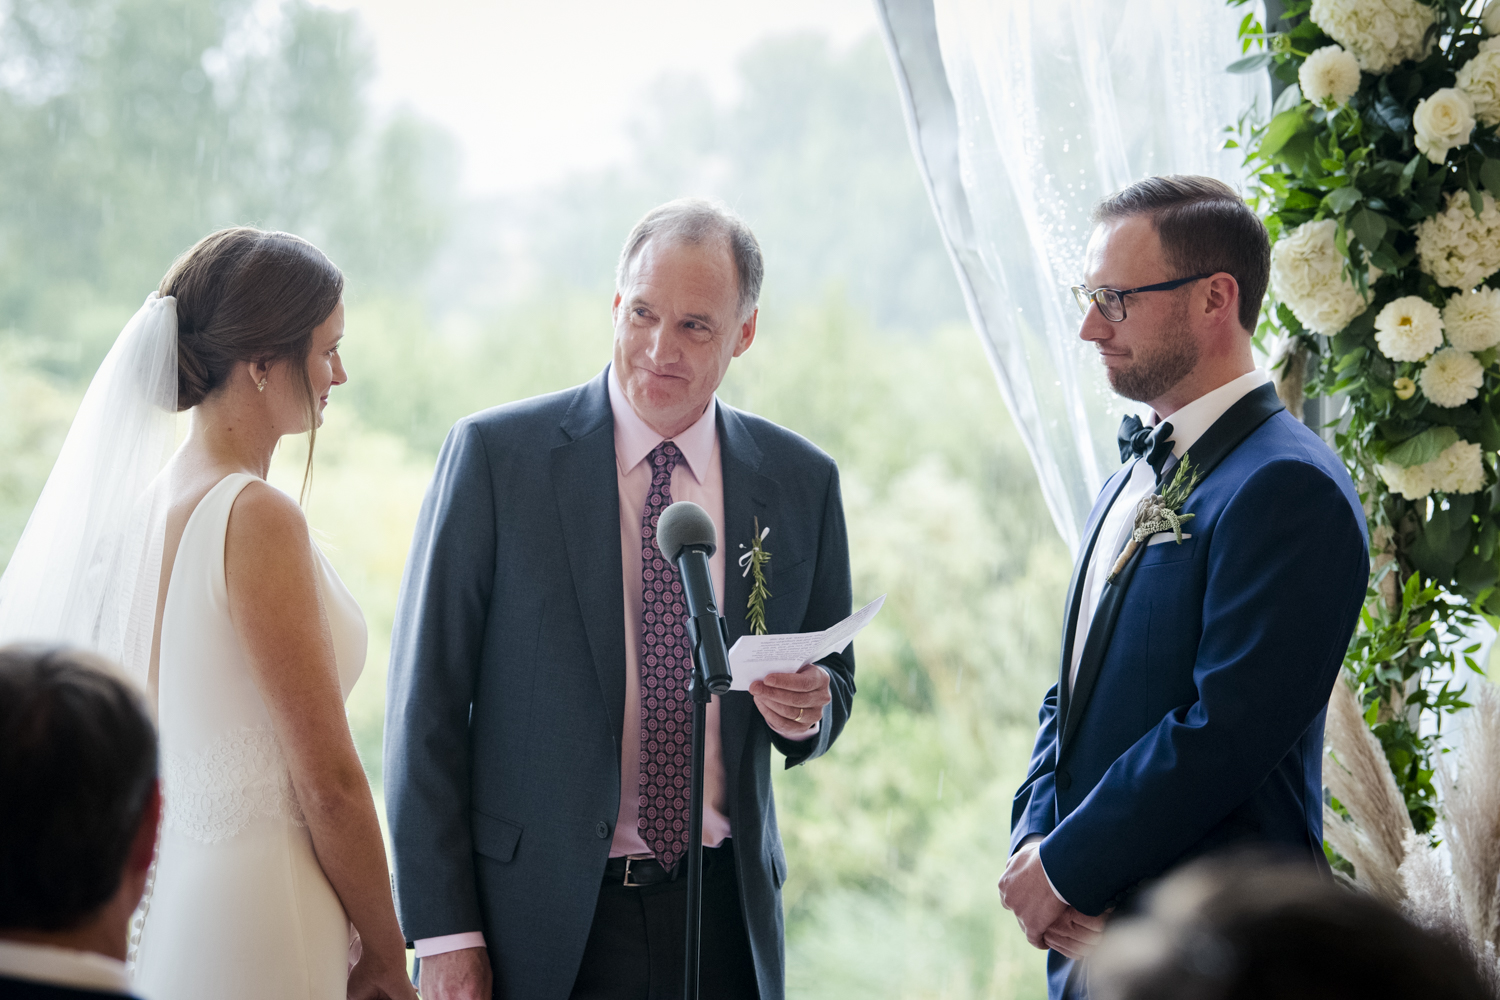 trailcreek_rainy_wedding-040.jpg